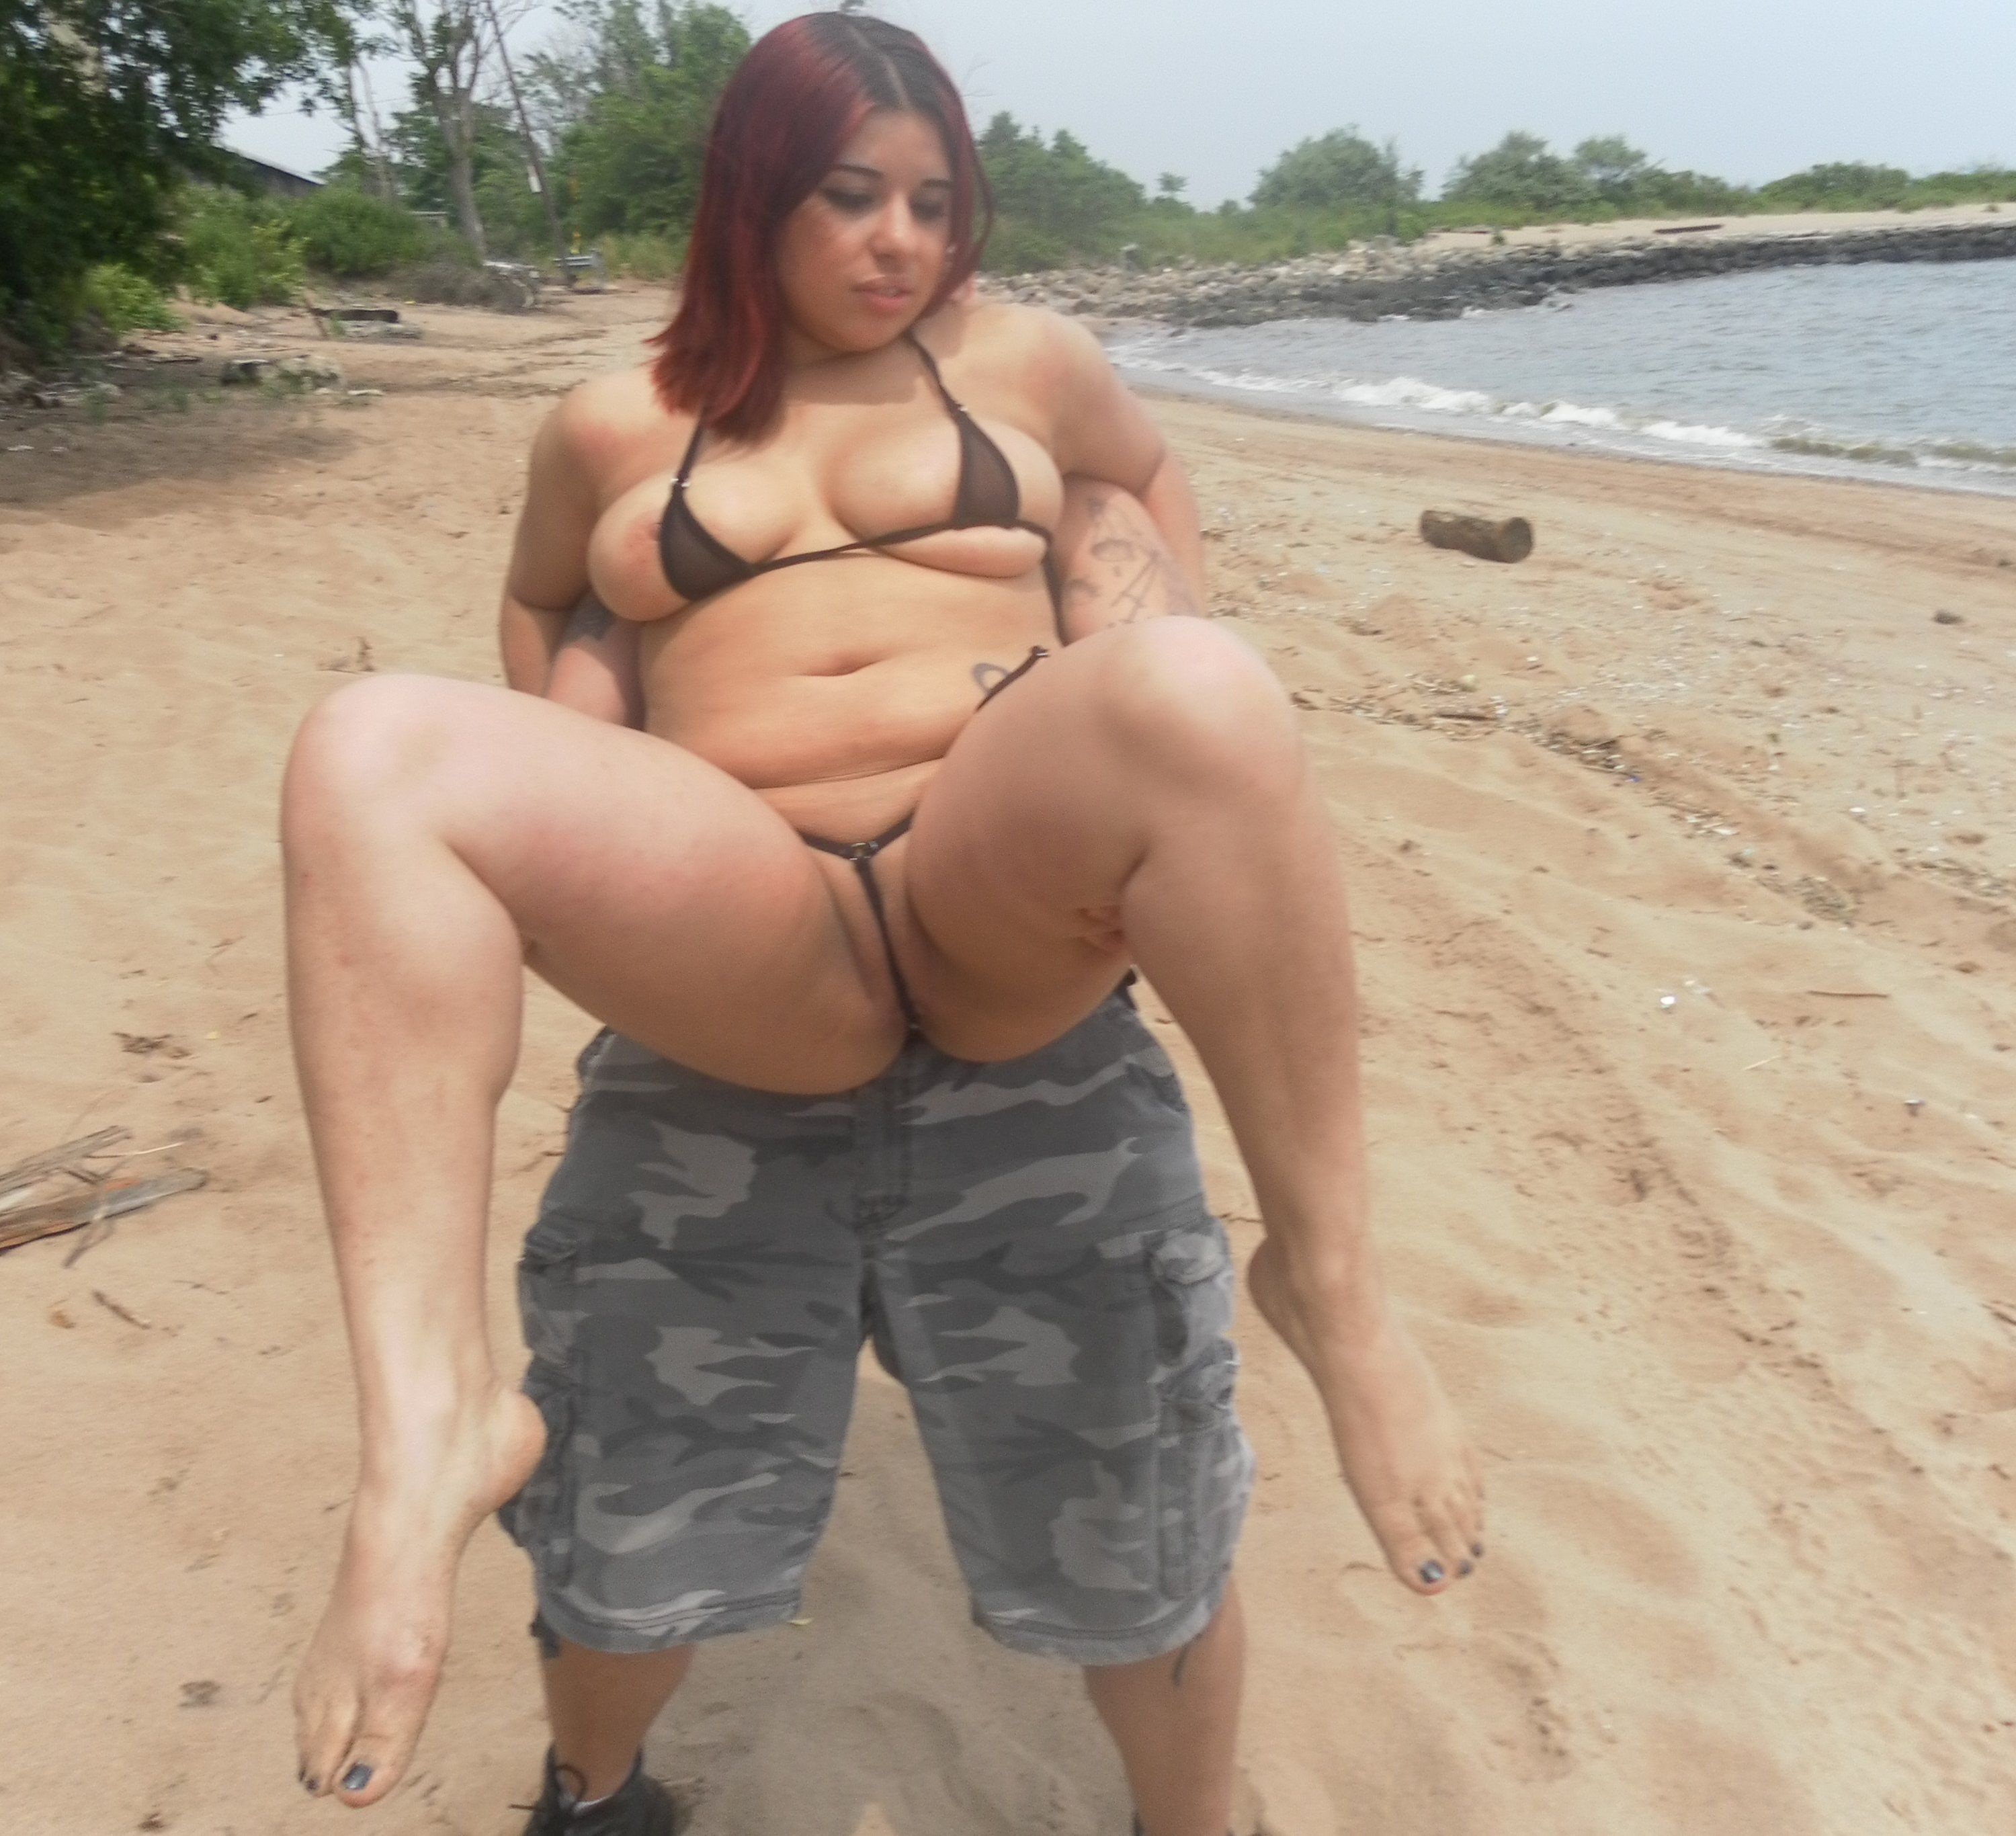 [Latina Amateurs]chubby Latina [xp r/candidasshole]